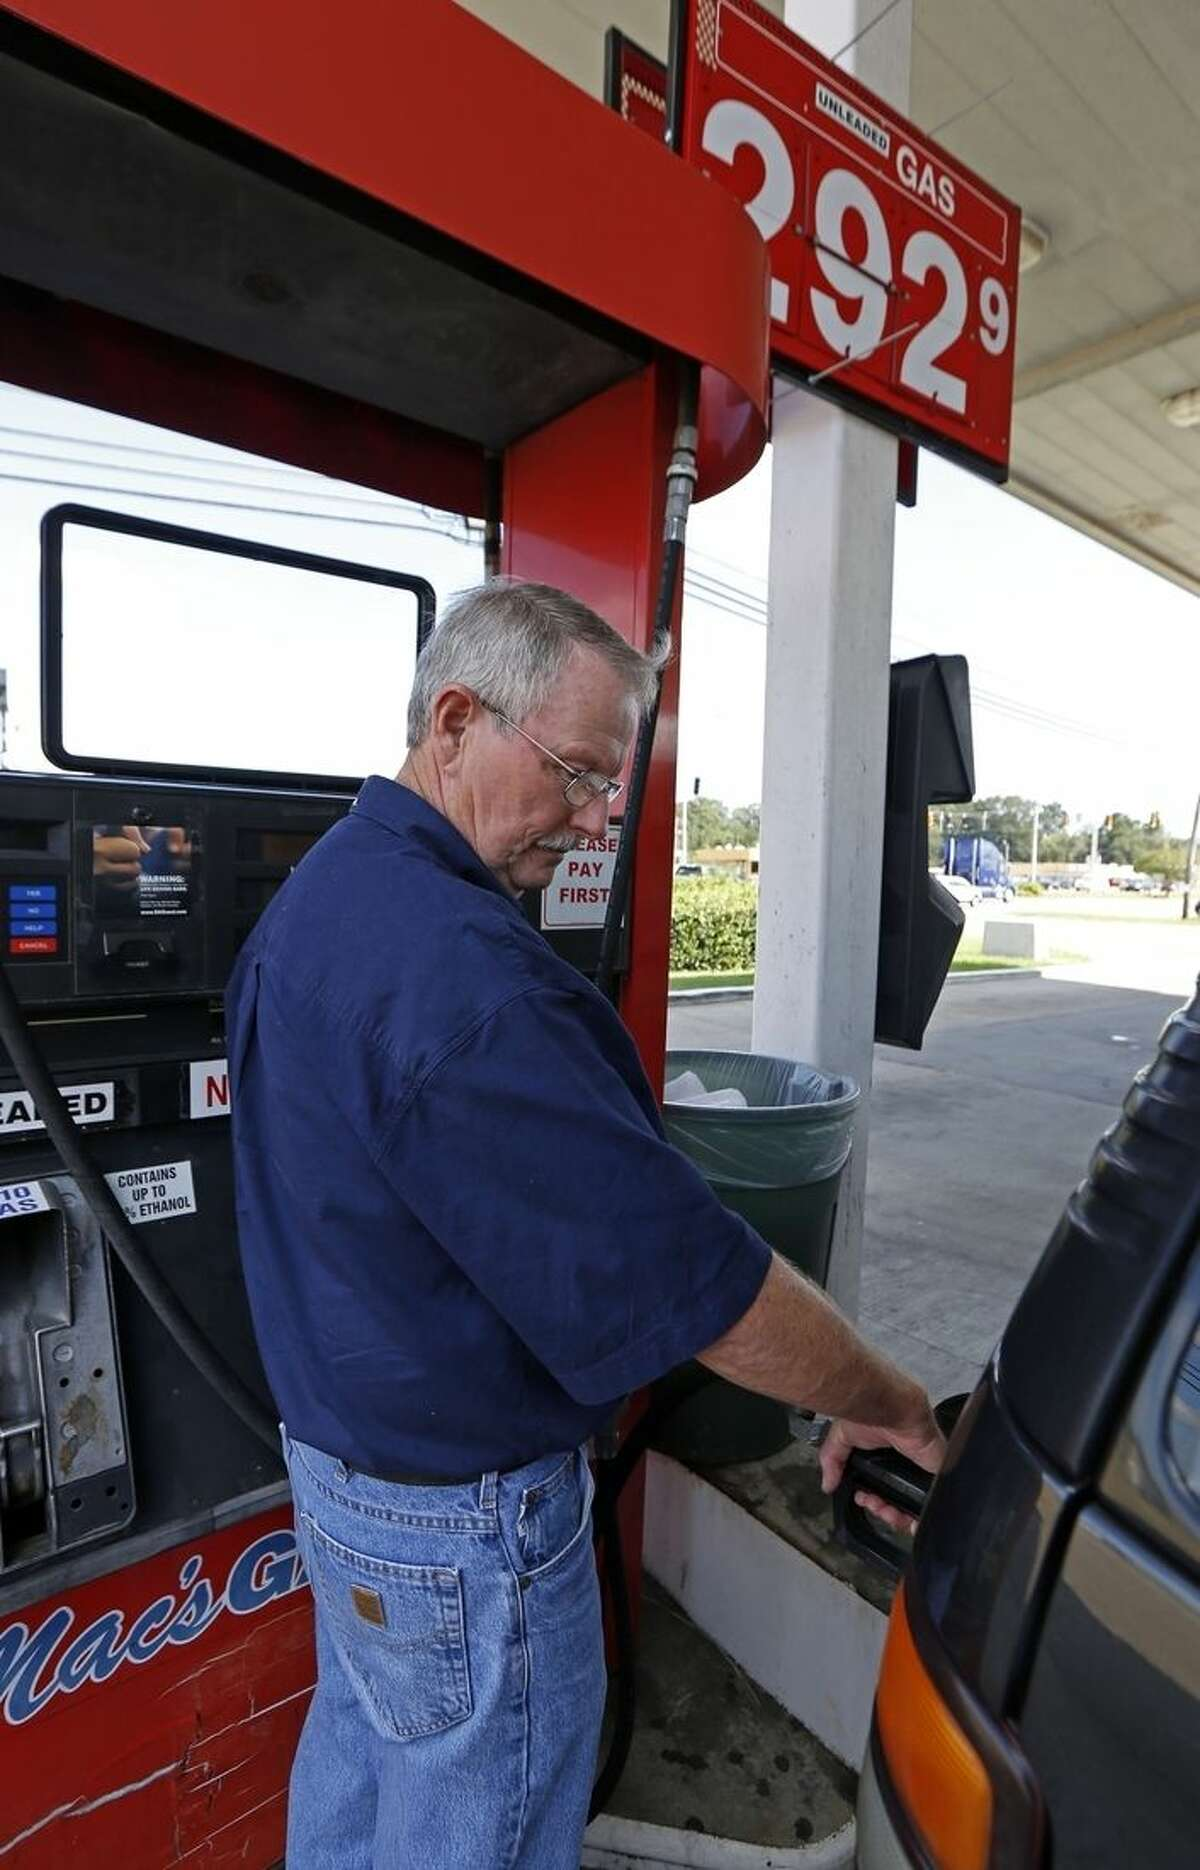 In this Wednesday, Sept. 24, 2014 photo, Foster Gilley, of Chatom, Ala., fills his SUV's tank with $2.92-per-gallon regular gas at Mac's Gas in Richland, Miss. The typical autumn decline in gasoline prices is getting a big push lower by falling global oil prices. By the end of the year, up to 30 states could have an average gasoline price of under $3 a gallon. Gilley and his wife were visiting his brother in Vicksburg and were